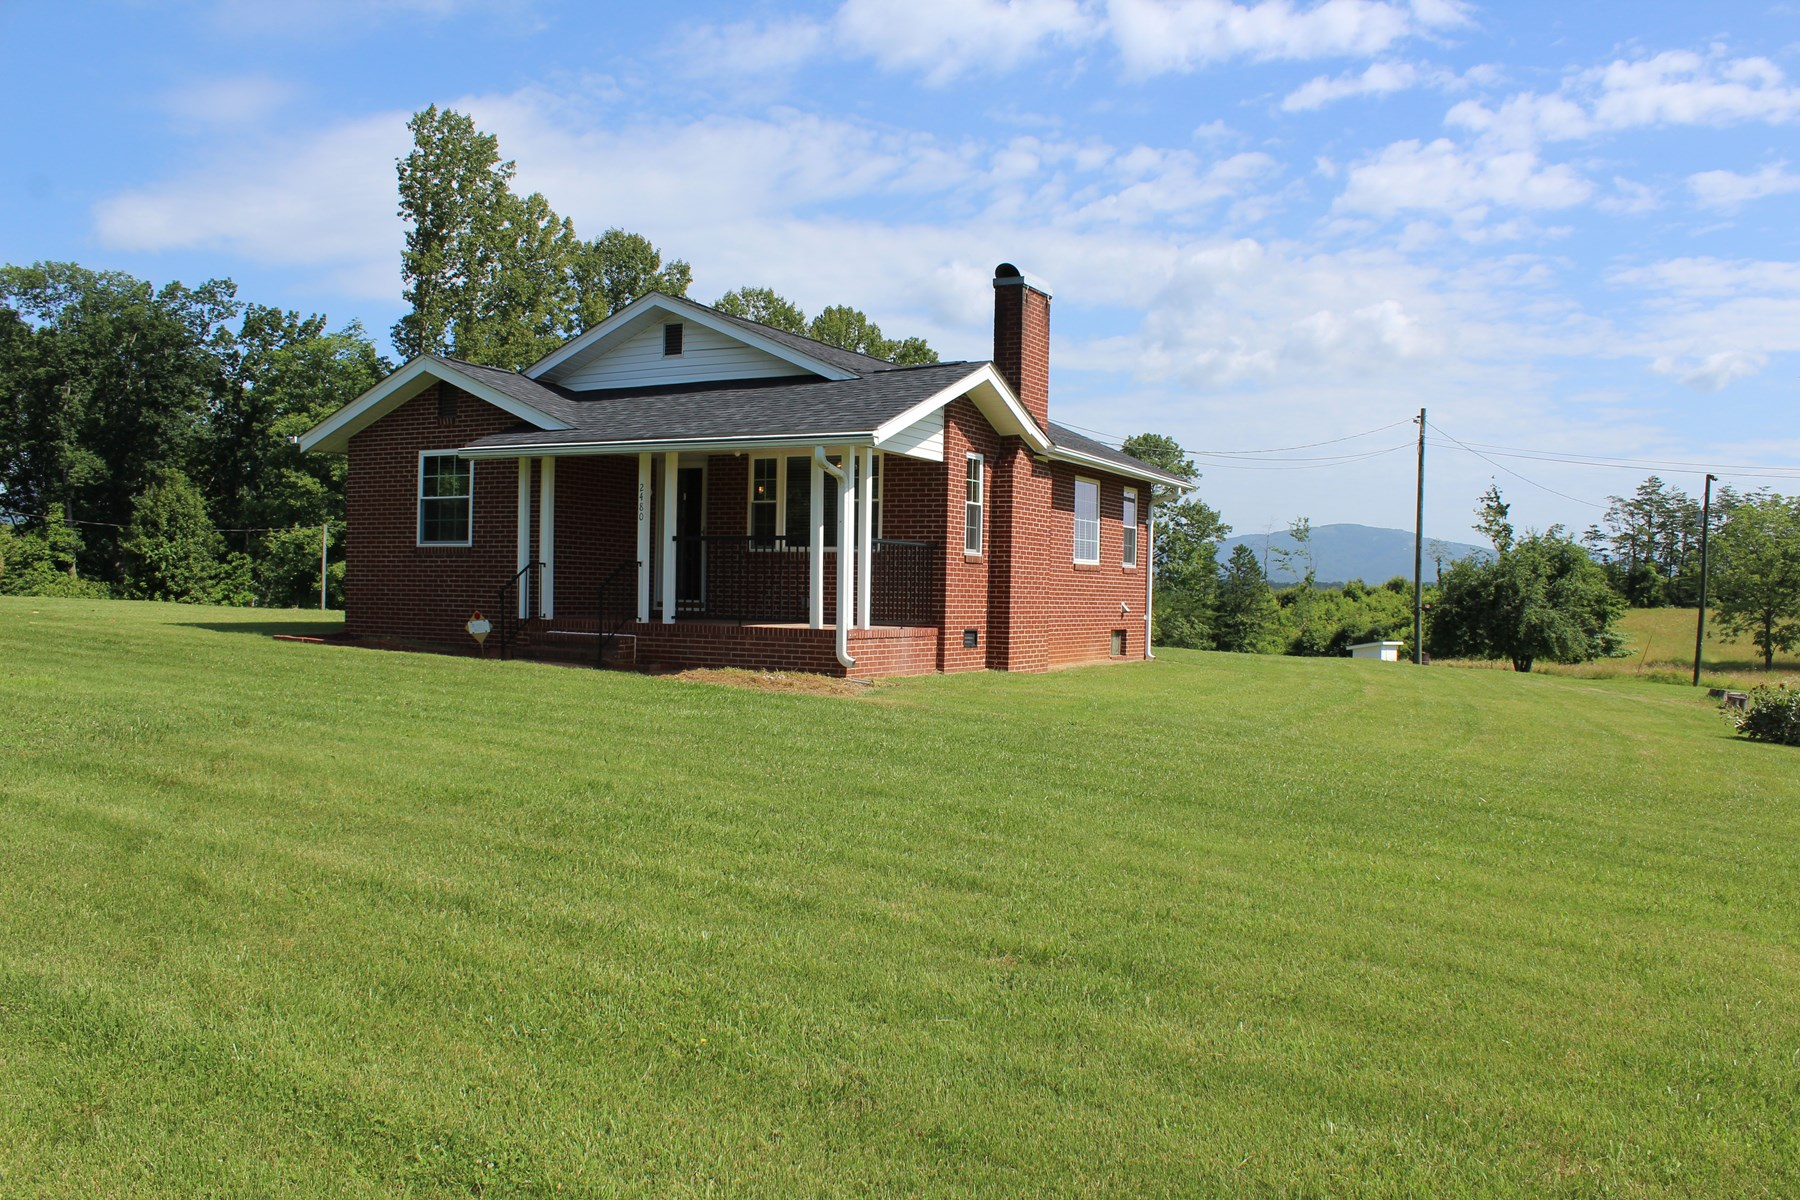 Home for sale in Mount Airy NC - home with acreage